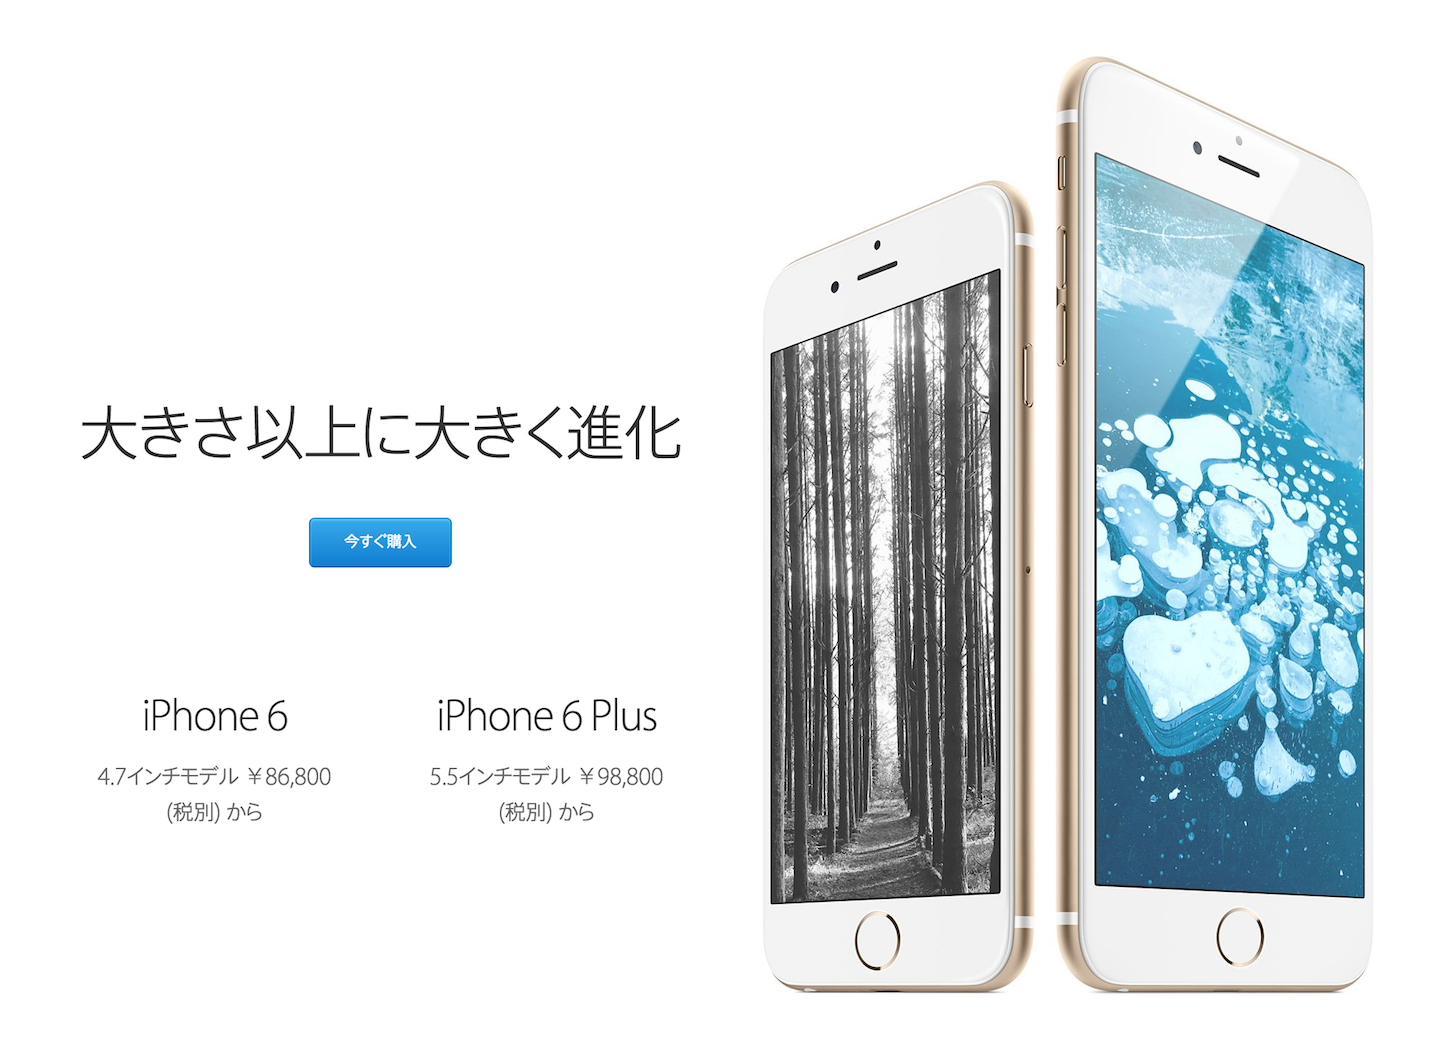 IPhone 6 6 Plus Apple公式サイト